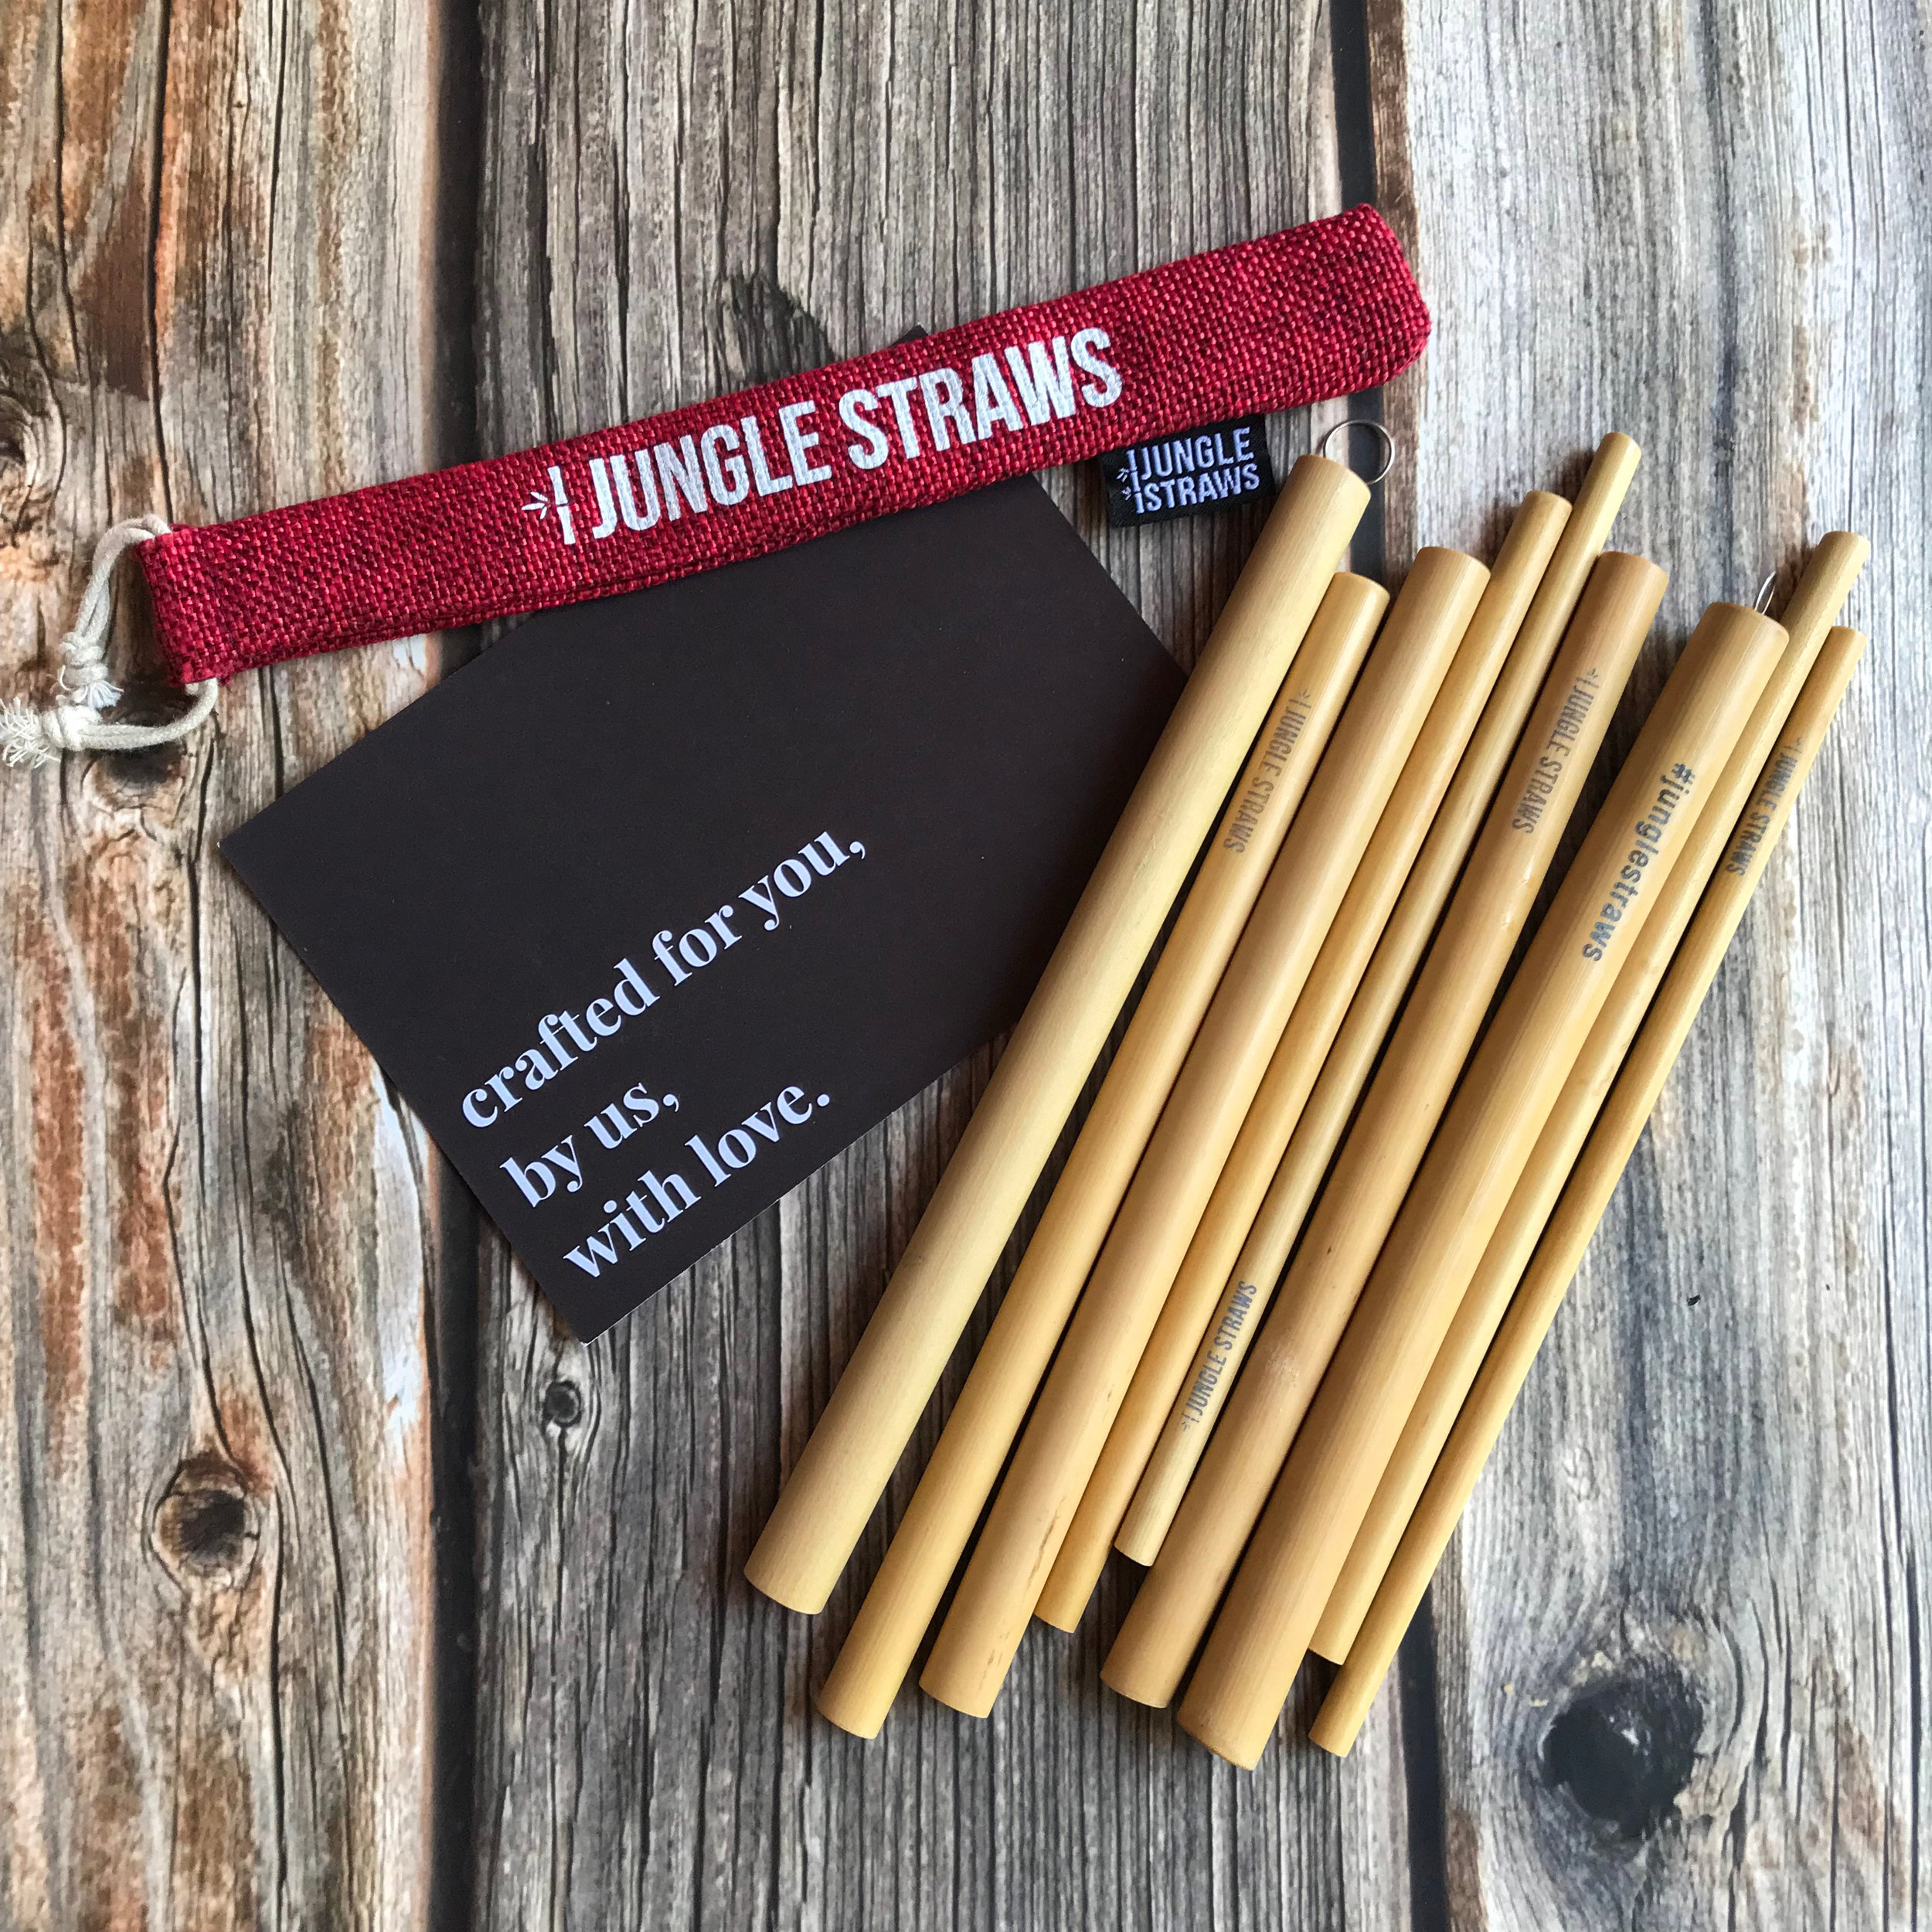 Jungle-Straws-Reusable-Bamboo--Straws-Eco-Friendly-Alternative-To-Single-Use Plastic.jpg